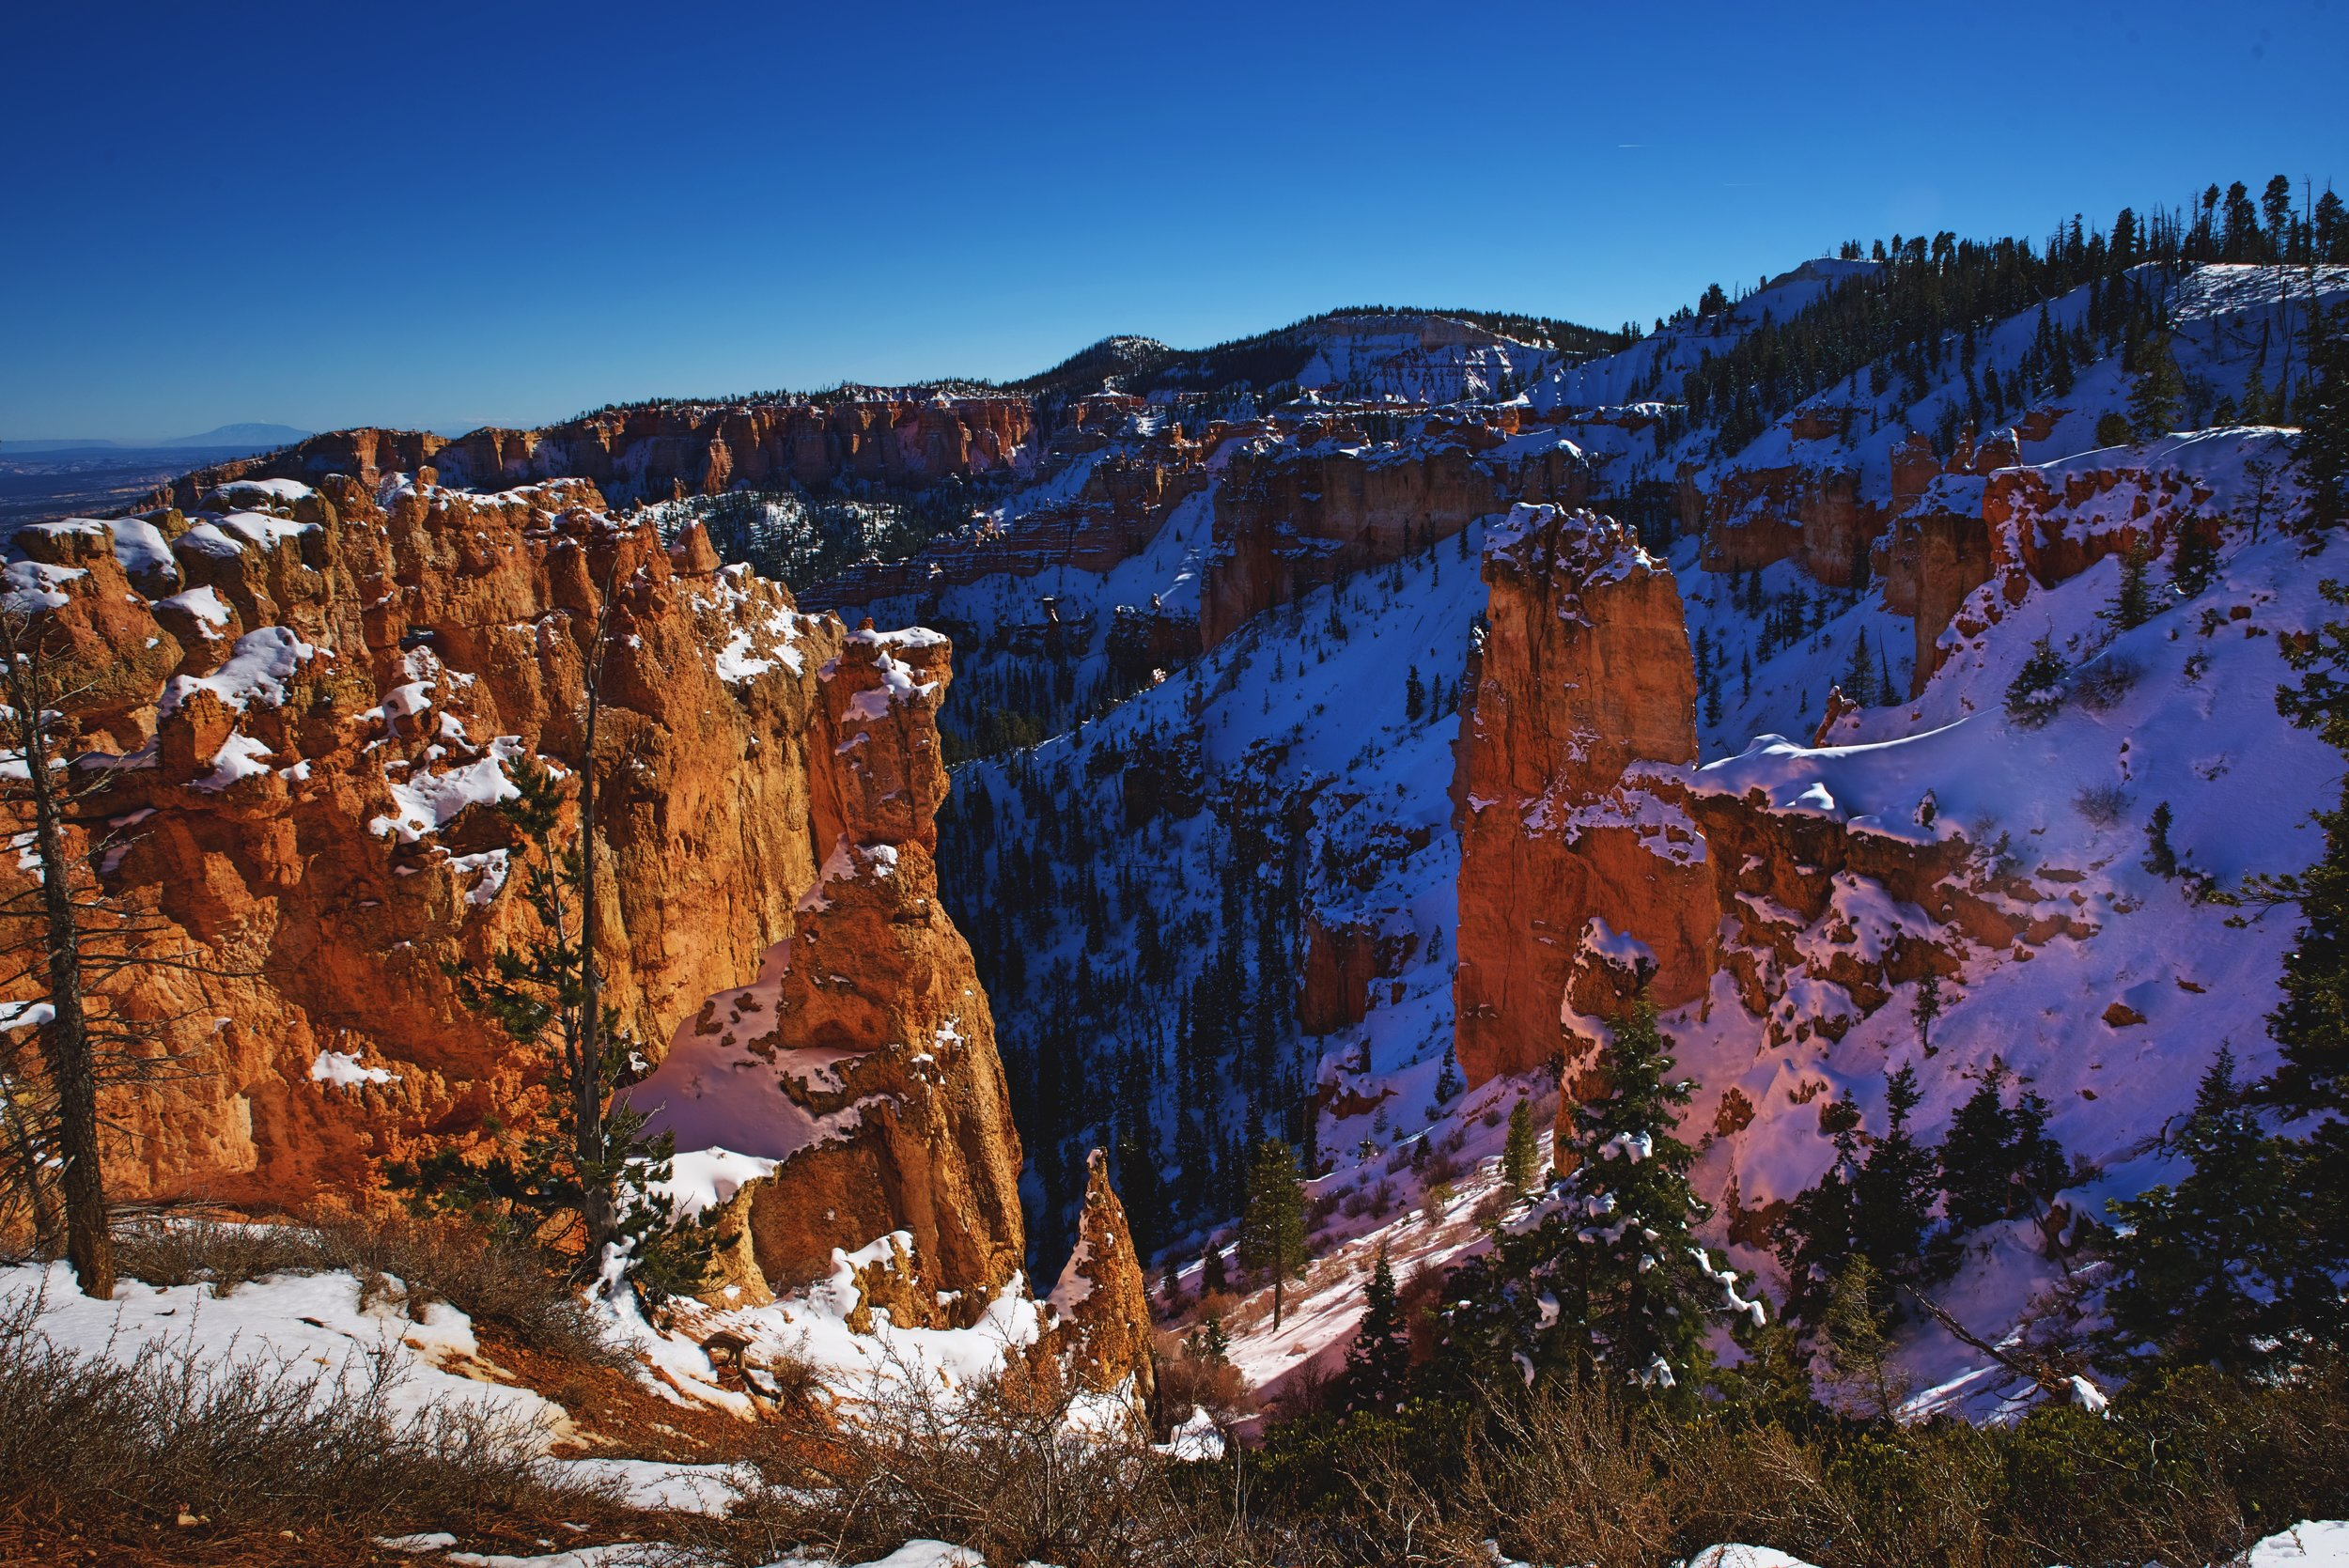 Black Birch Canyon offers a much closer view of the red cliffs of Bryce Canyon.